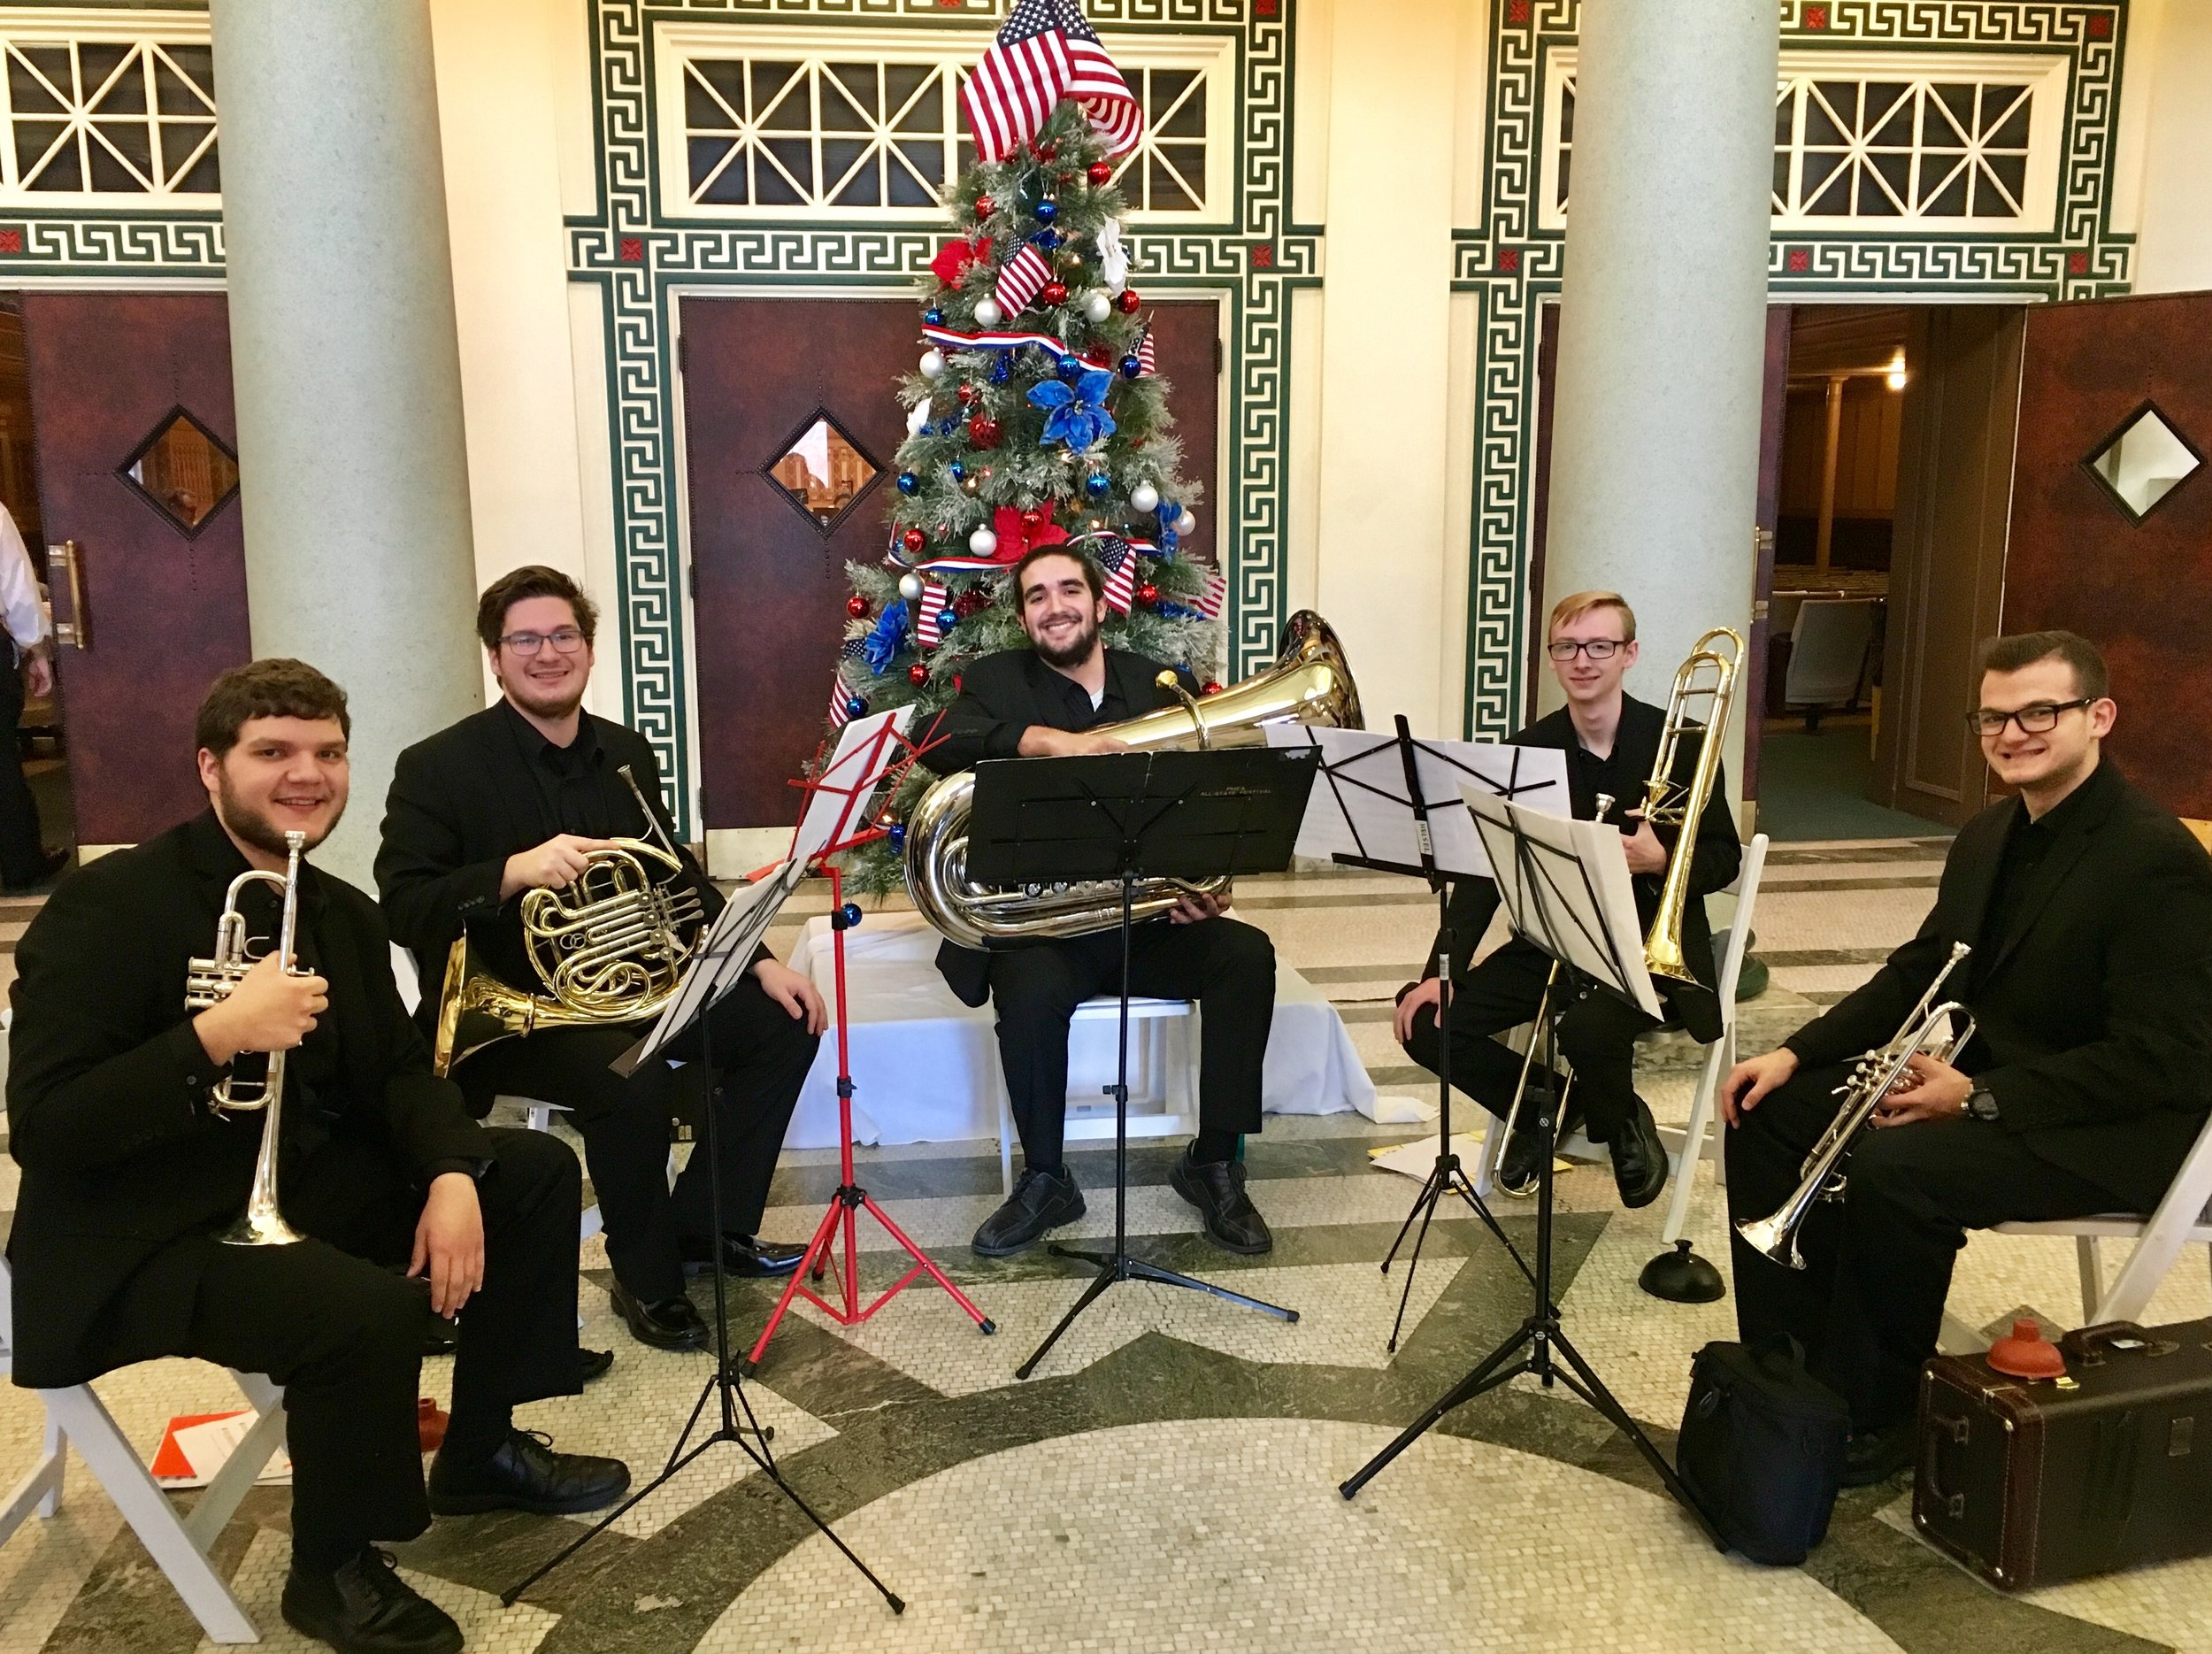 "Brass Roots Pre-Concert Performance - Sunday, December 2, 2018 - Monaloh Brass Quintet - Soldiers & Sailors Memorial Hall in Oakland, PAJoel, Noah, Connor, Lukas, and Ryan—all members of the PIttsburgh Youth Symphony Orchestra—performed before the Brass Roots and Pine Creek Community Band concert. Then the Brass Roots invited Monaloh Brass on stage to join them in the finale featuring Leroy Anderson's ""Sleigh Ride."""